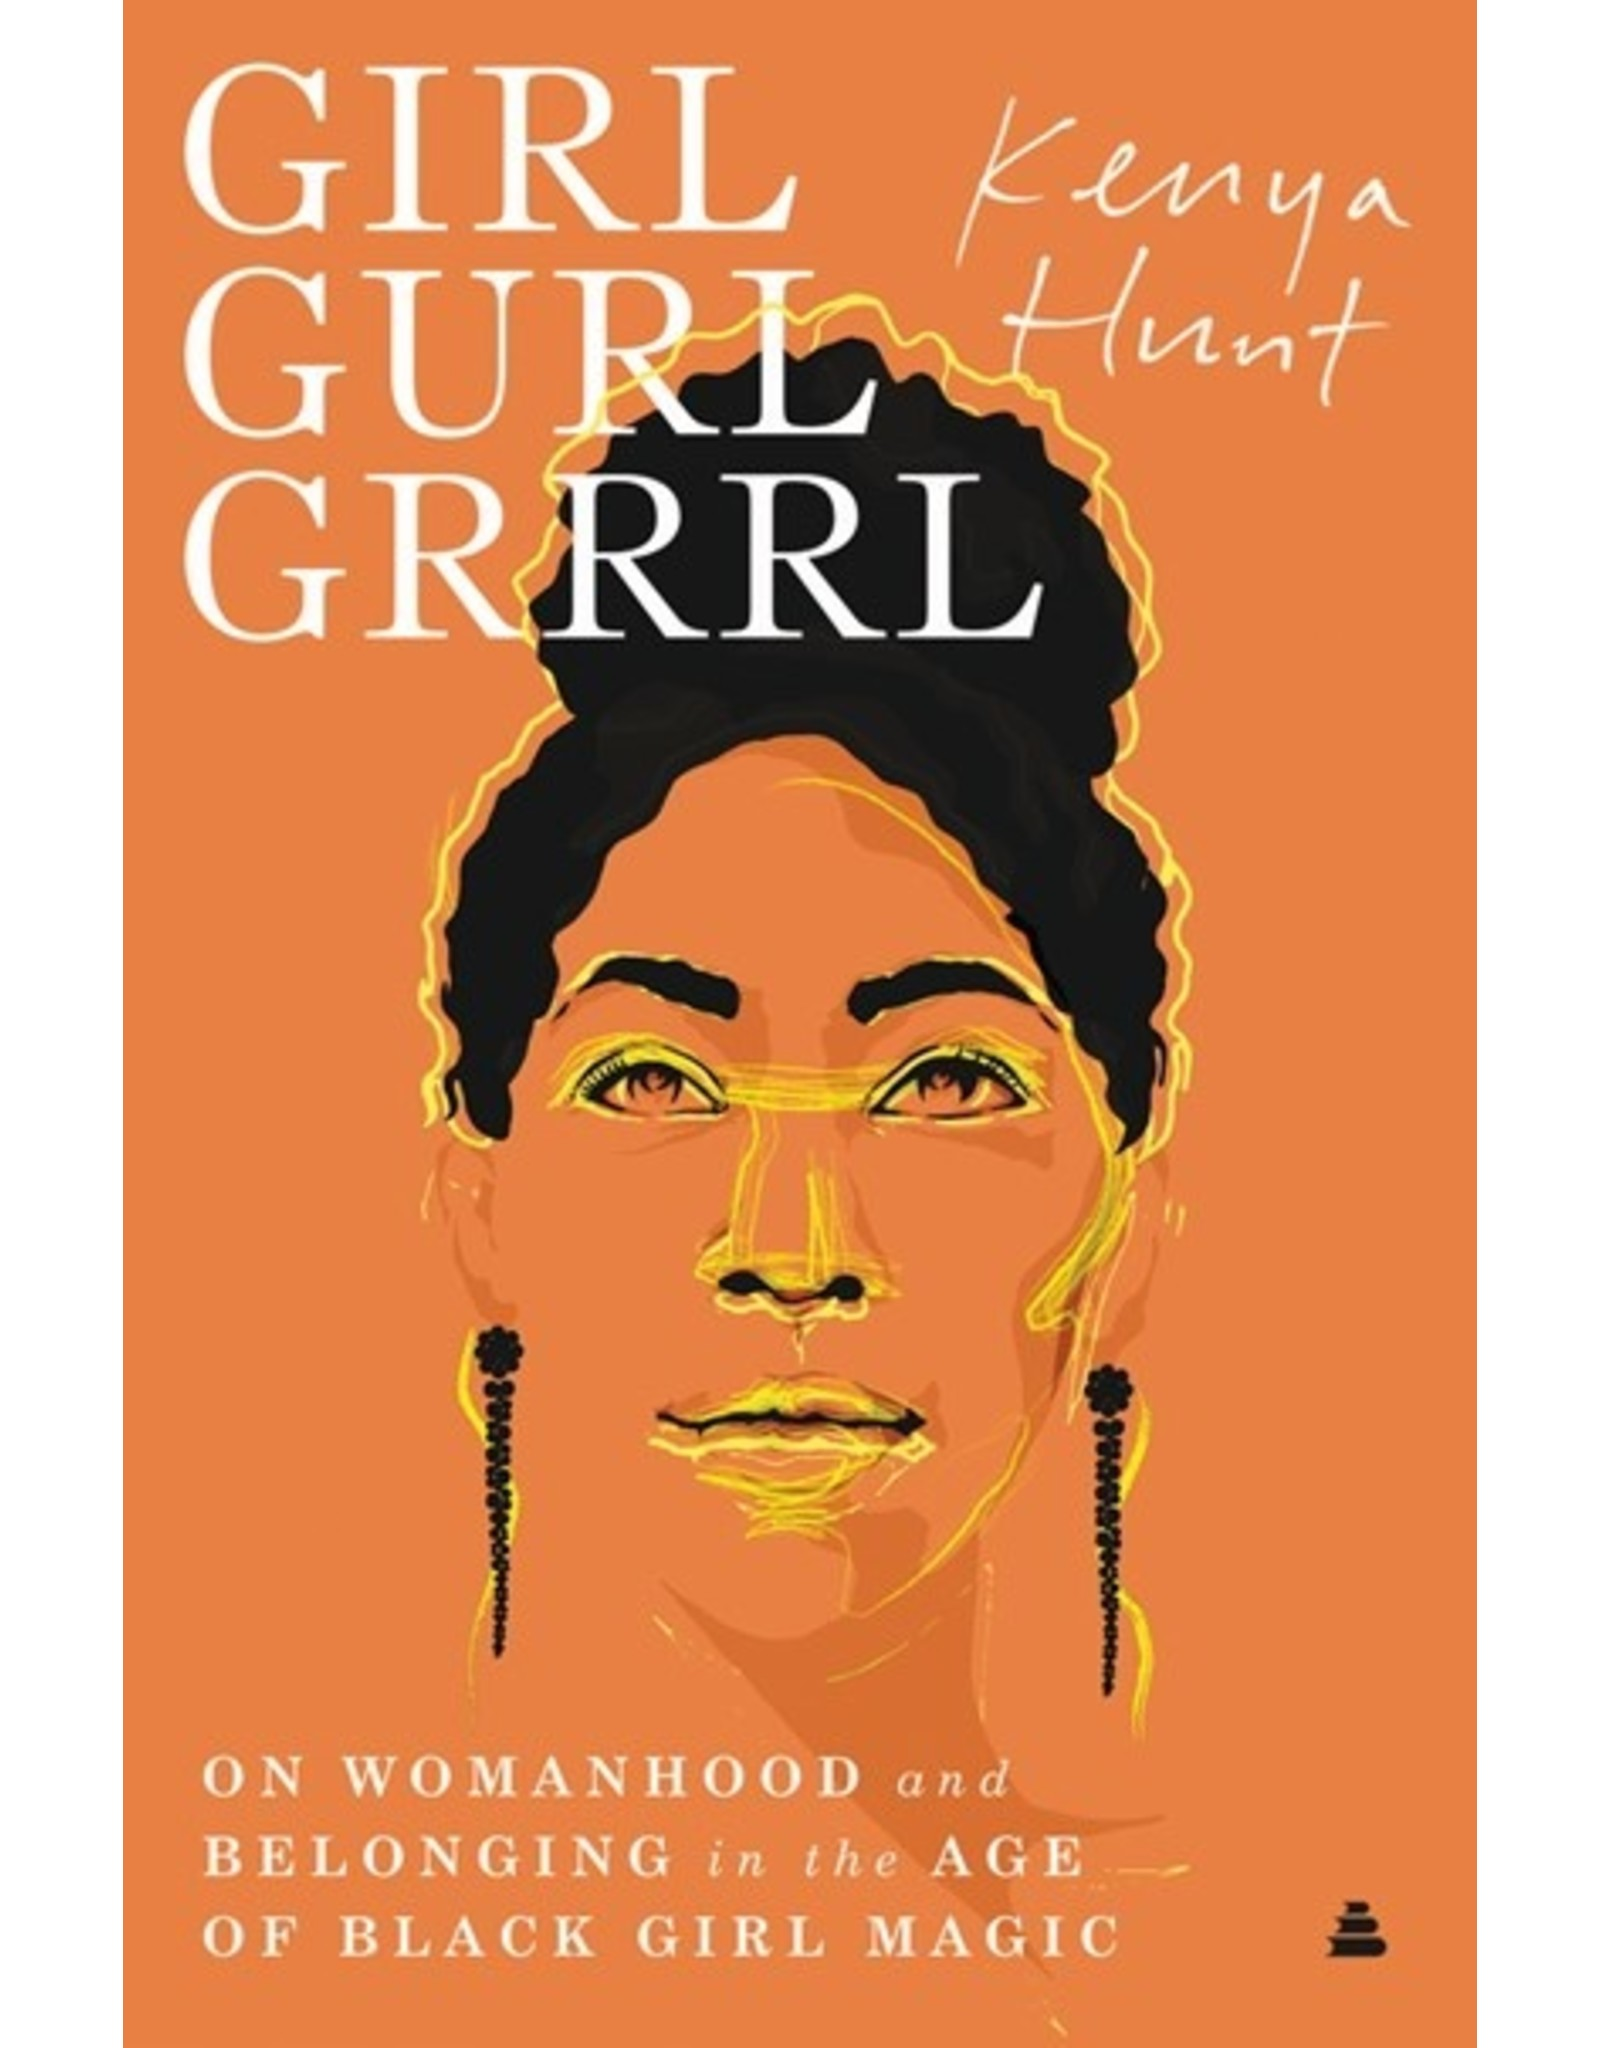 Books Girl Gurl Grrrl : On Womanhood and Belonging in the Age of Black Girl Magic  (Pre-Order)